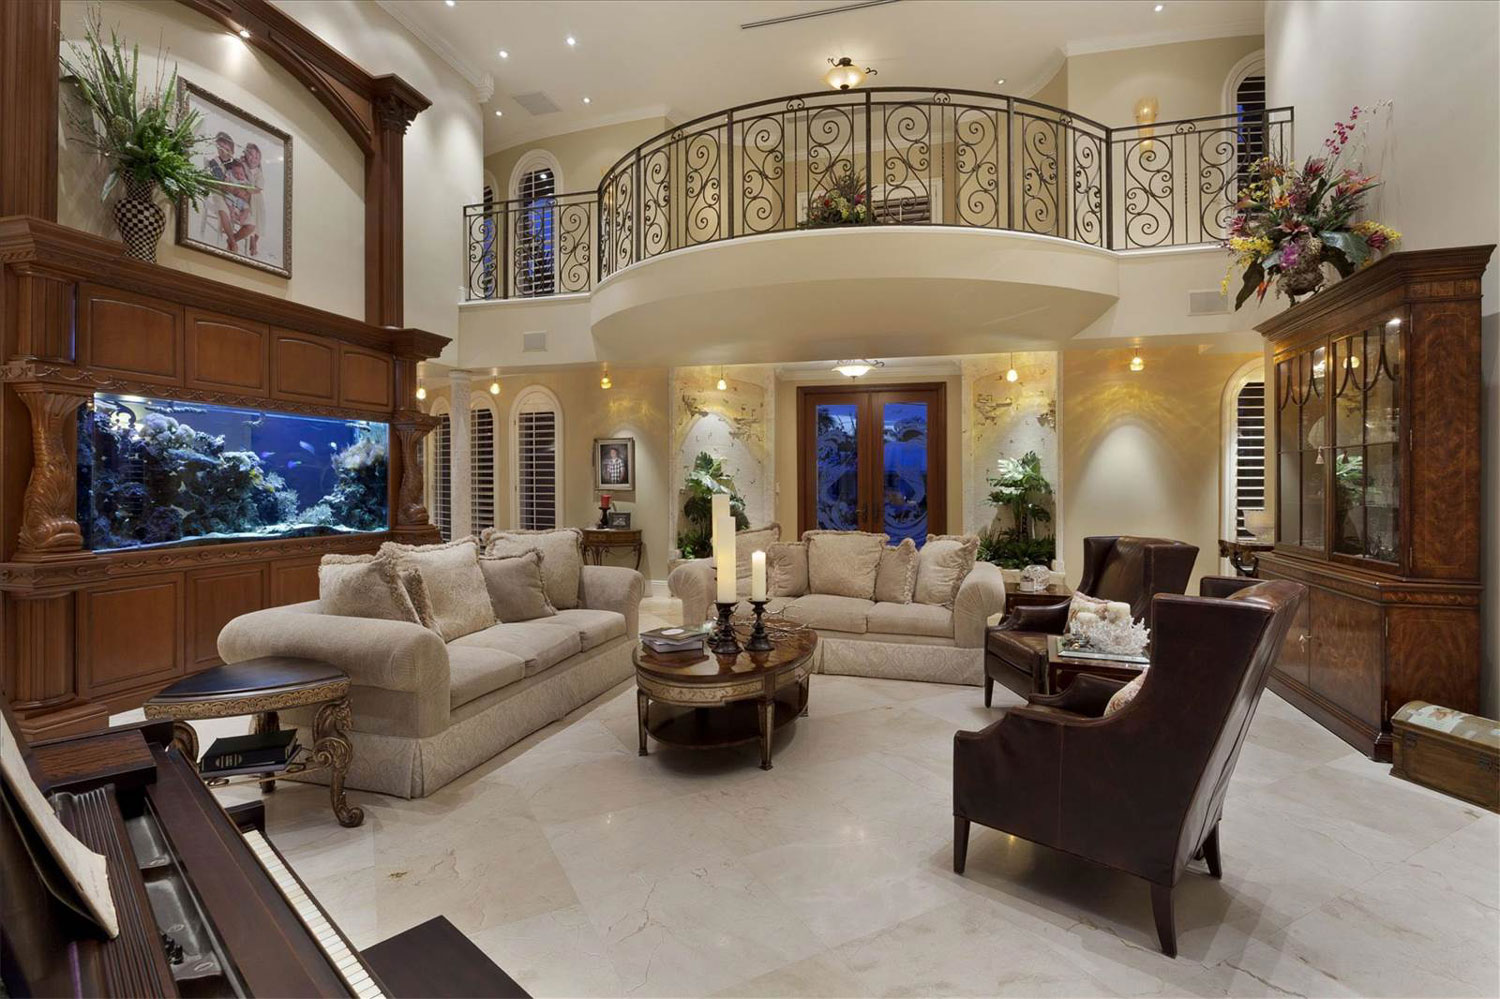 The theme of the sea is on constant display in this grand Mediterranean-style main residence. The saltwater aquarium provides a relaxing interlude in the magnificent two-story living room.